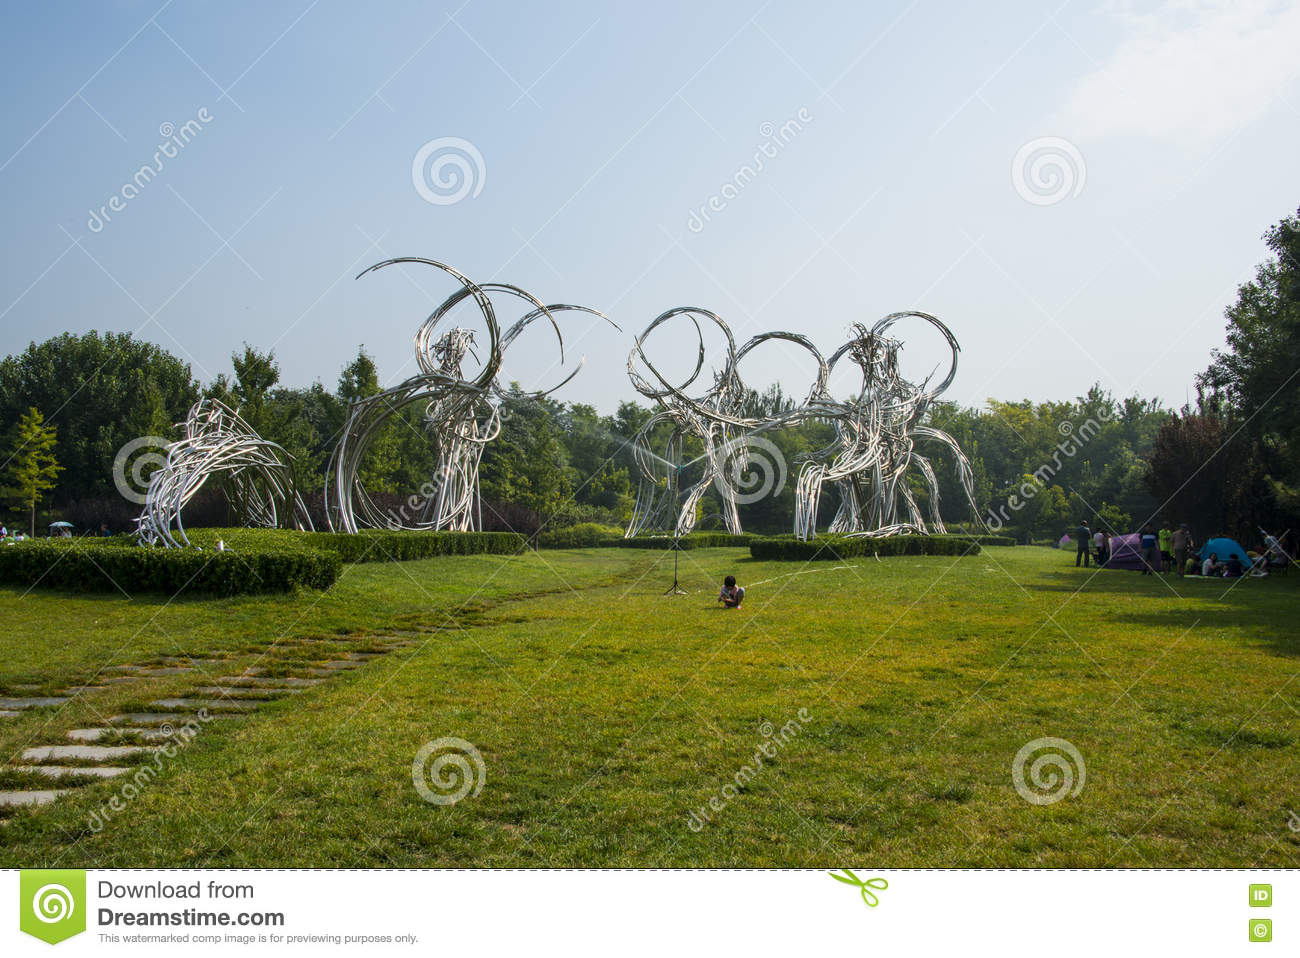 Asia China, Beijing, Olympic Forest Park, Landscape sculpture, road of athletes